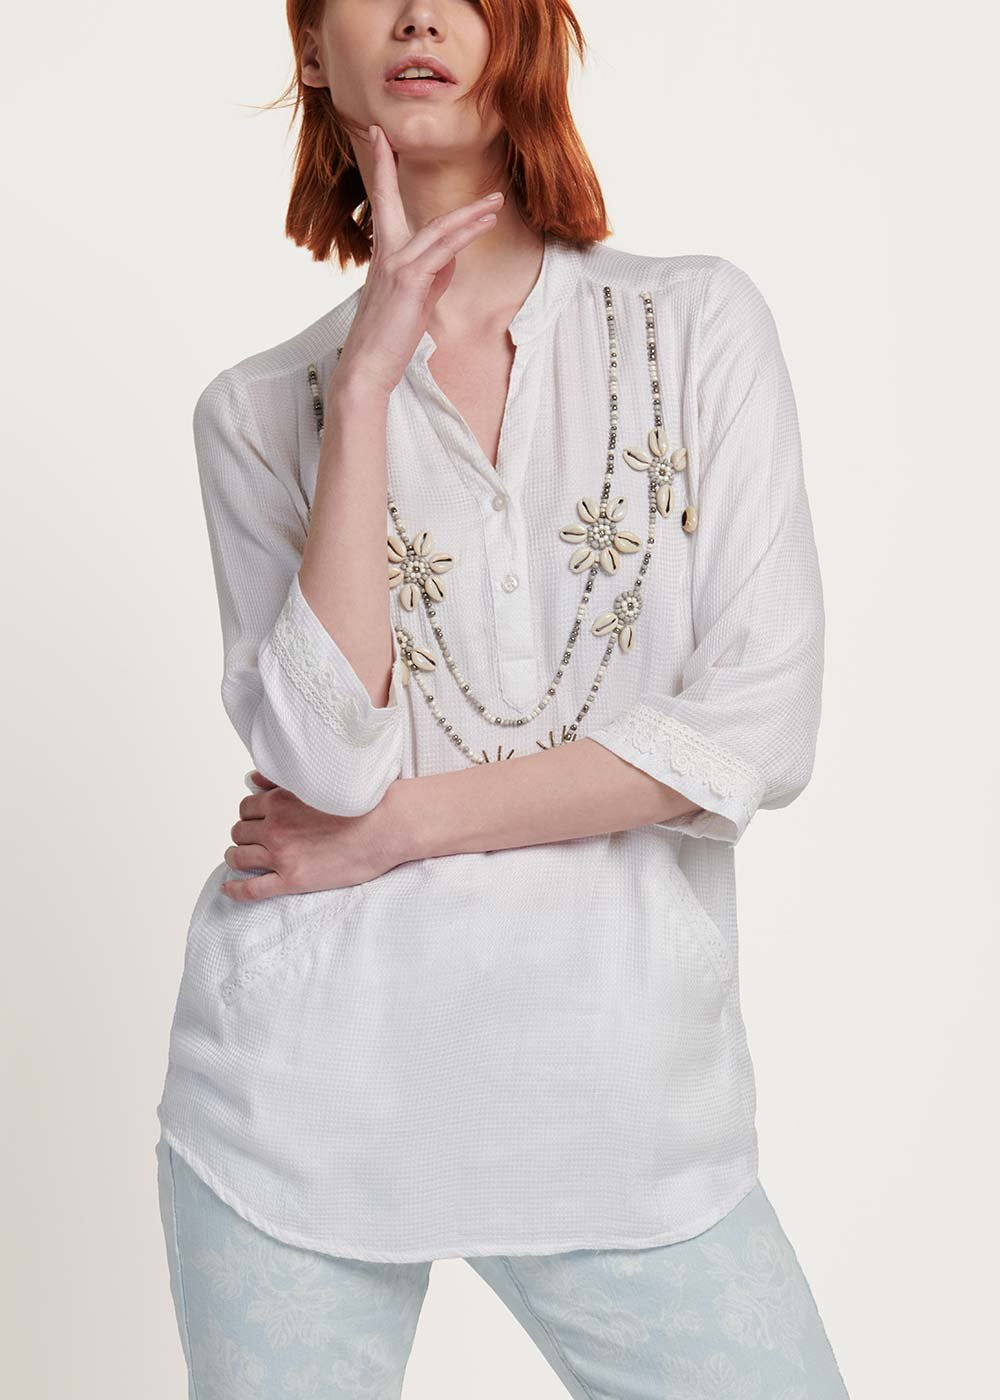 Coly blouse with embroidery of pearls and shells - White - Woman